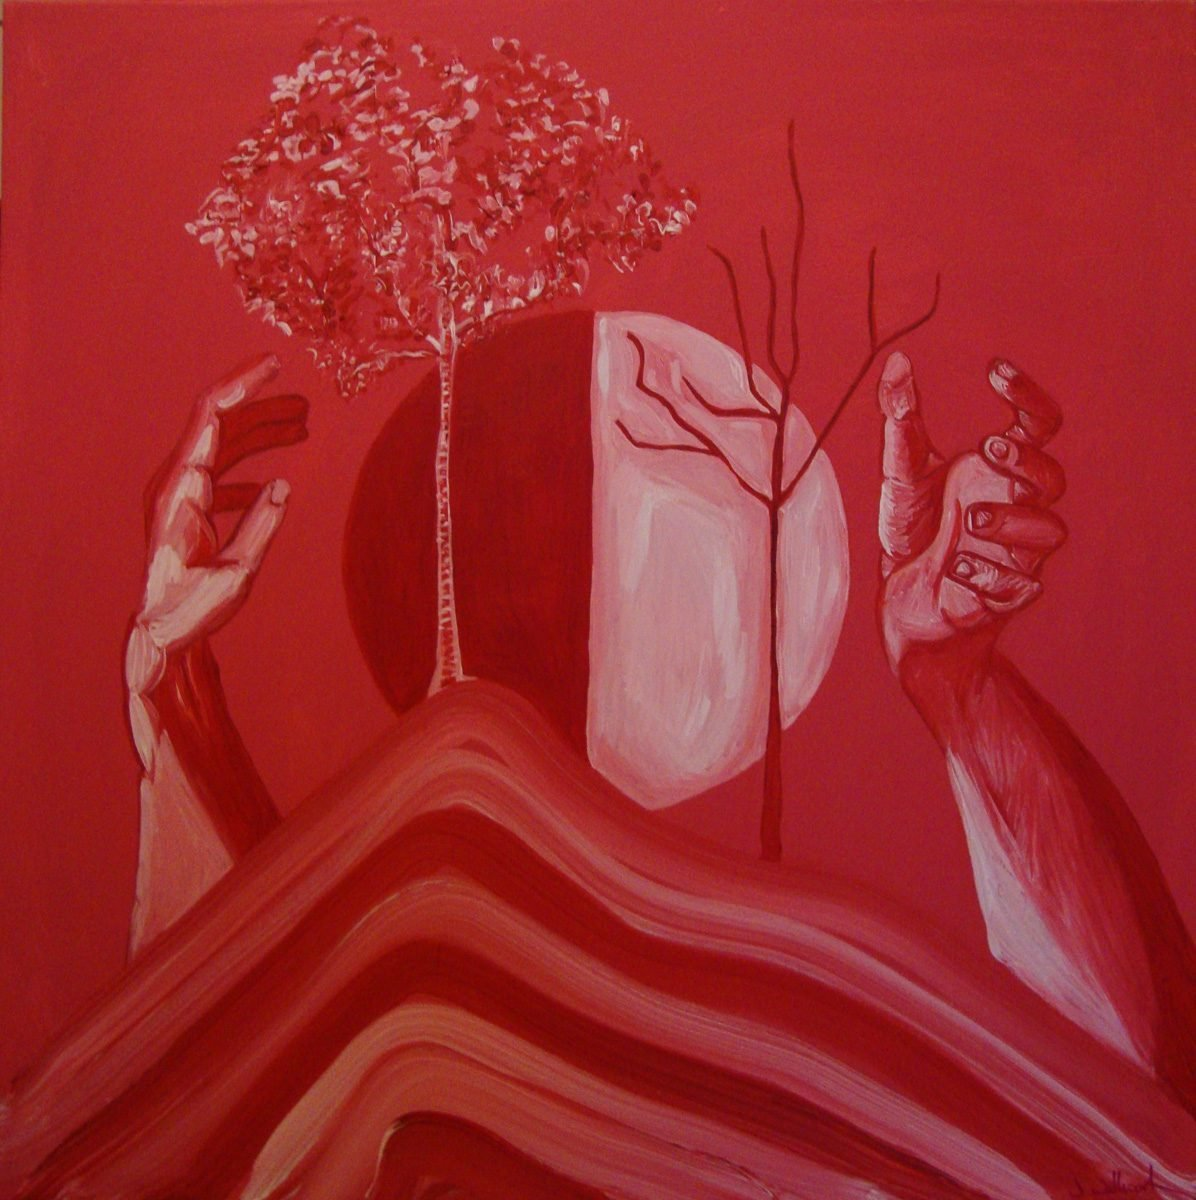 The image shows a piece of artwork by Jina Wallwork. It is a painting of hands and trees. Stylistically this piece of artwork has links with surrealism.